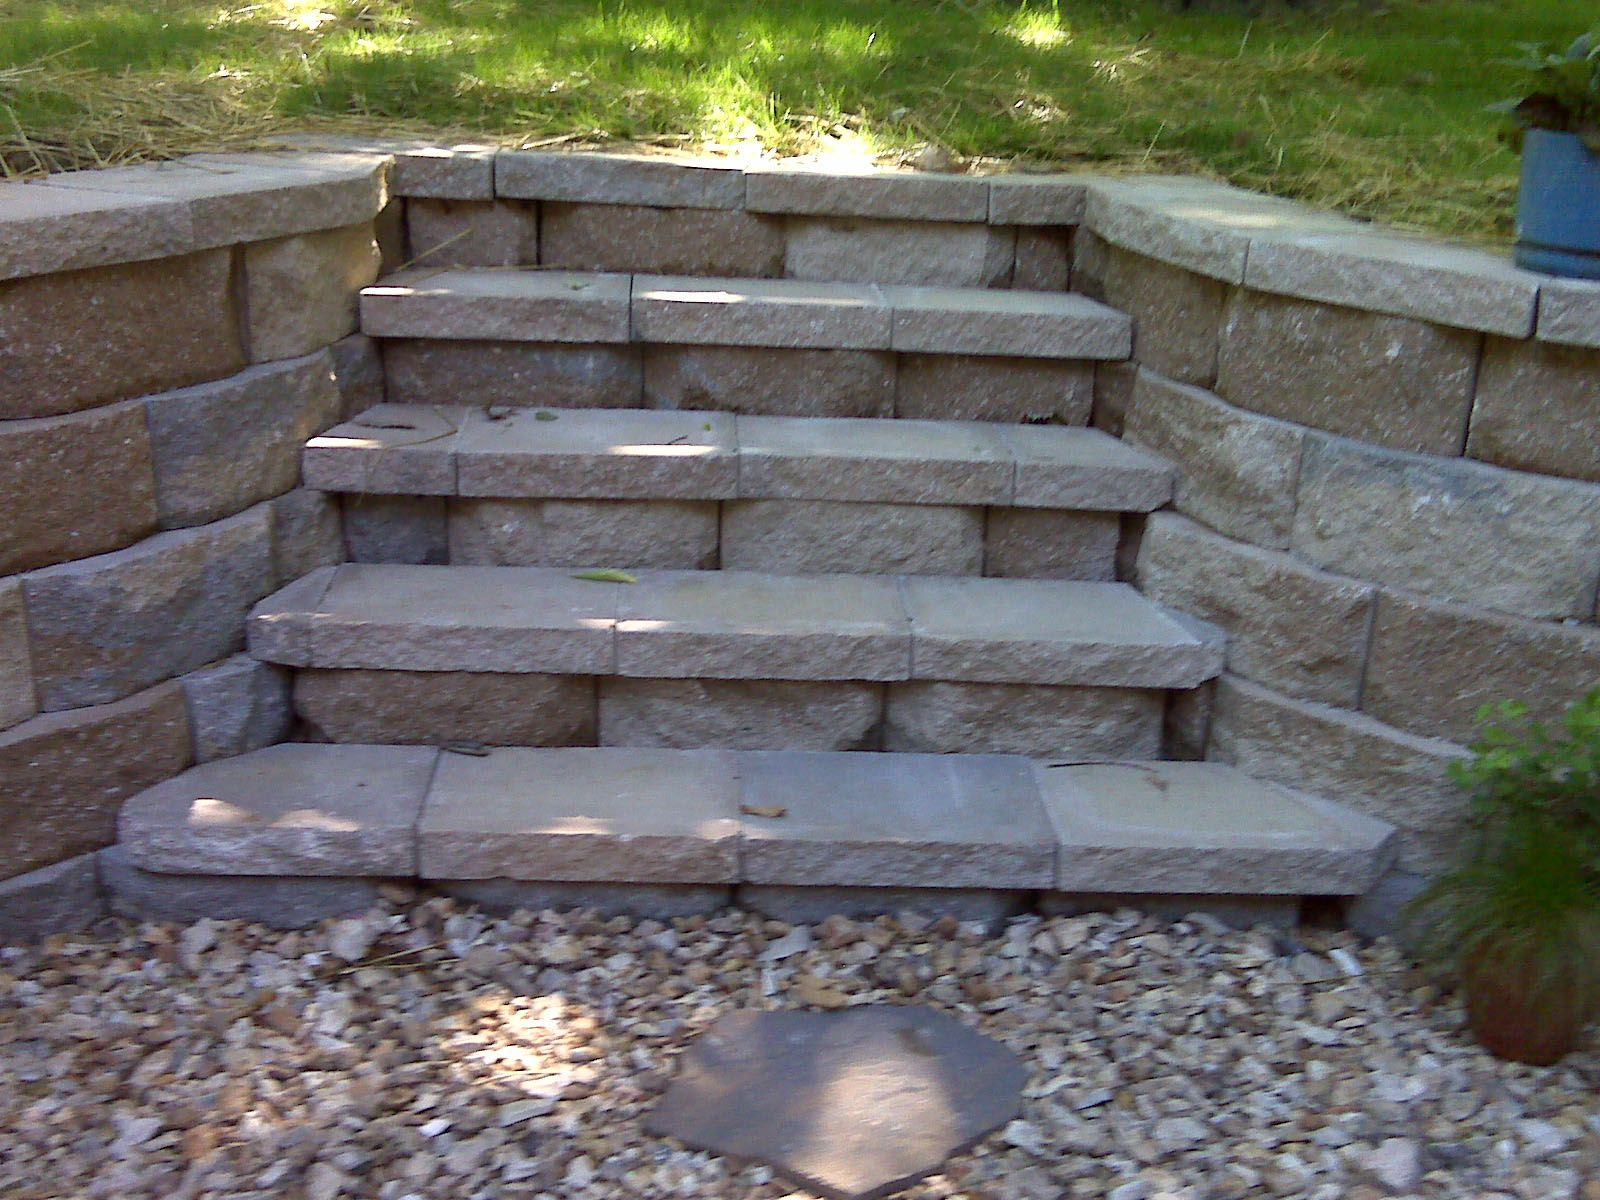 Retaining Wall Home Depot retaining wall | anchor diamond pro block retaining wall after (1